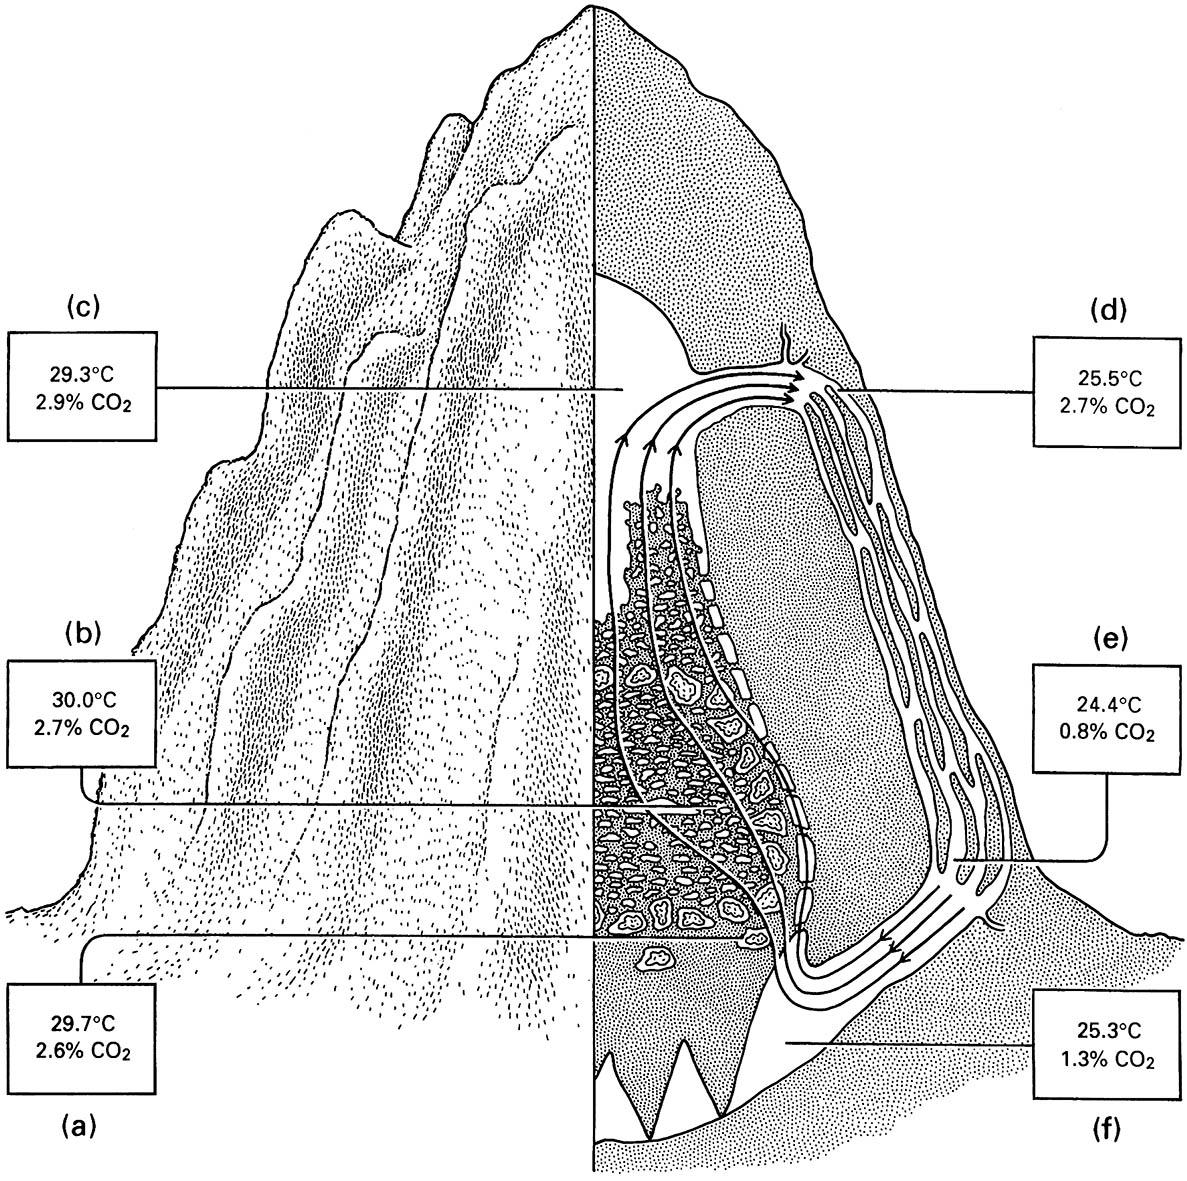 Section through the mound nest of the African fungus-farming termite Macrotermes natalensis (Isoptera: Termitidae) showing how air circulating in a series of passageways maintains favorable culture conditions for the fungus at the bottom of t he nest (a) and for the termite brood (b).